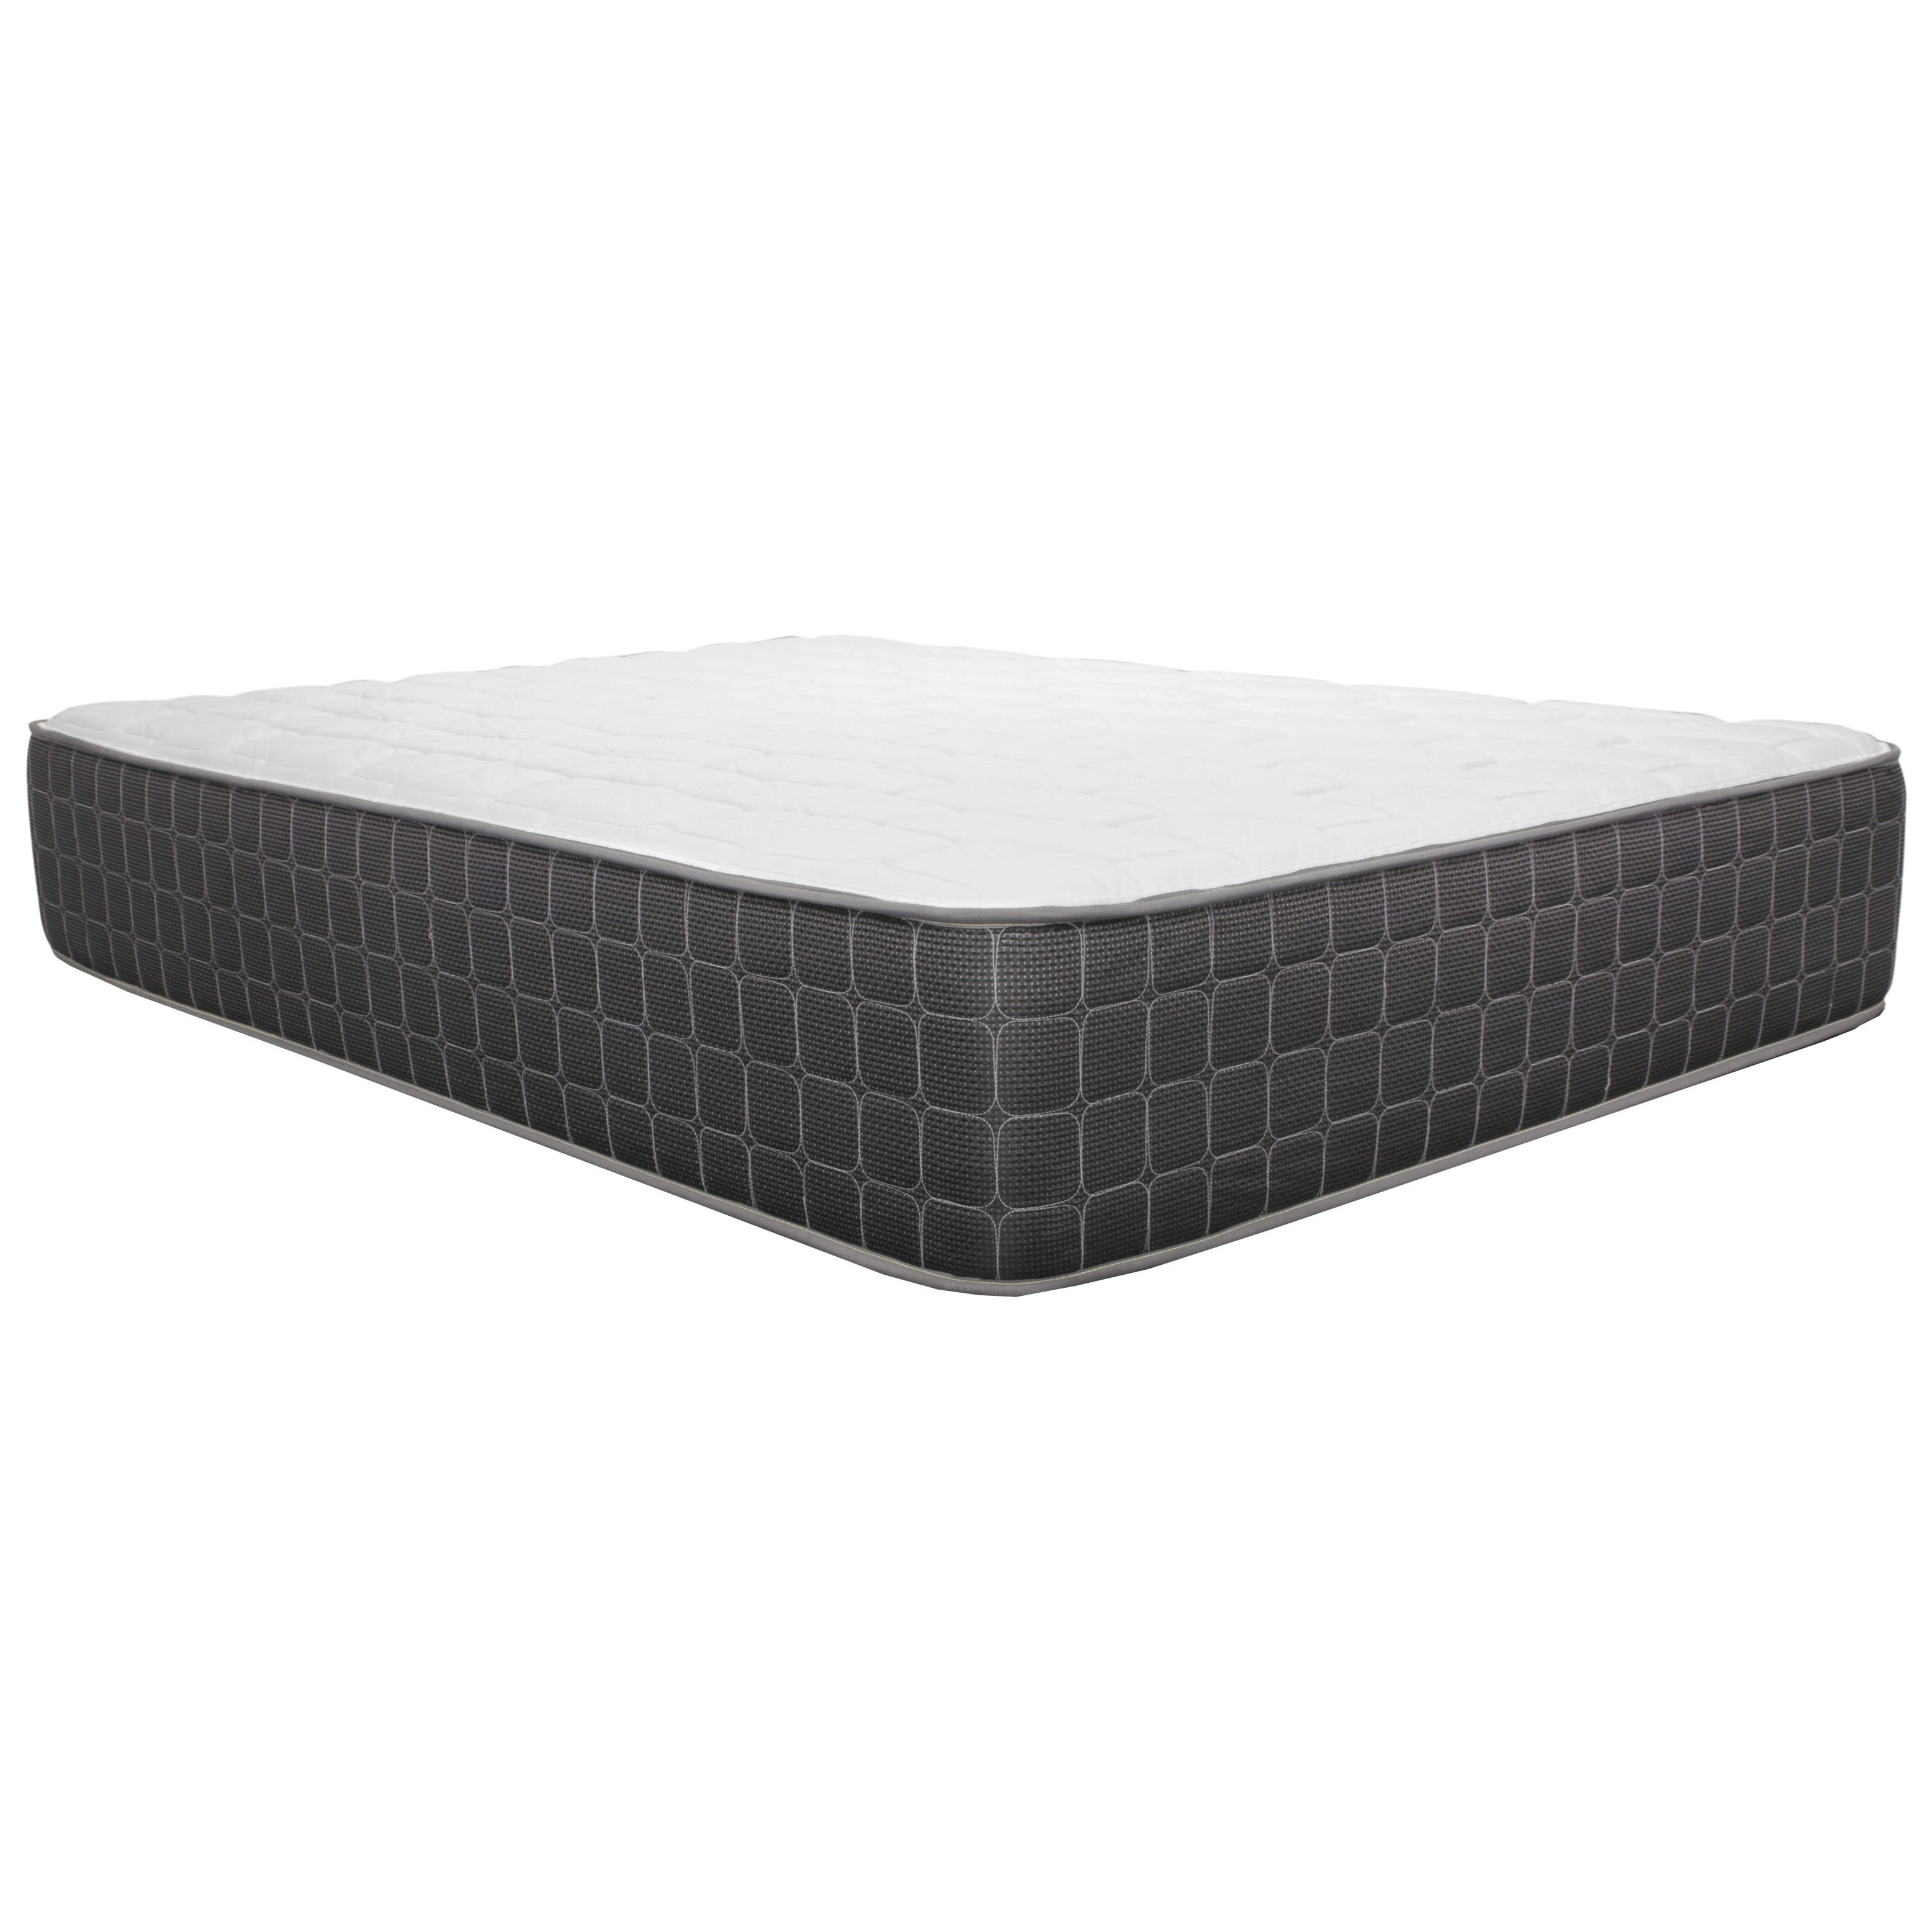 Corsicana 1700 Kingsmere Queen 13.5u0026quot; Firm Pocketed Coil Mattress - Furniture Superstore - NM ...